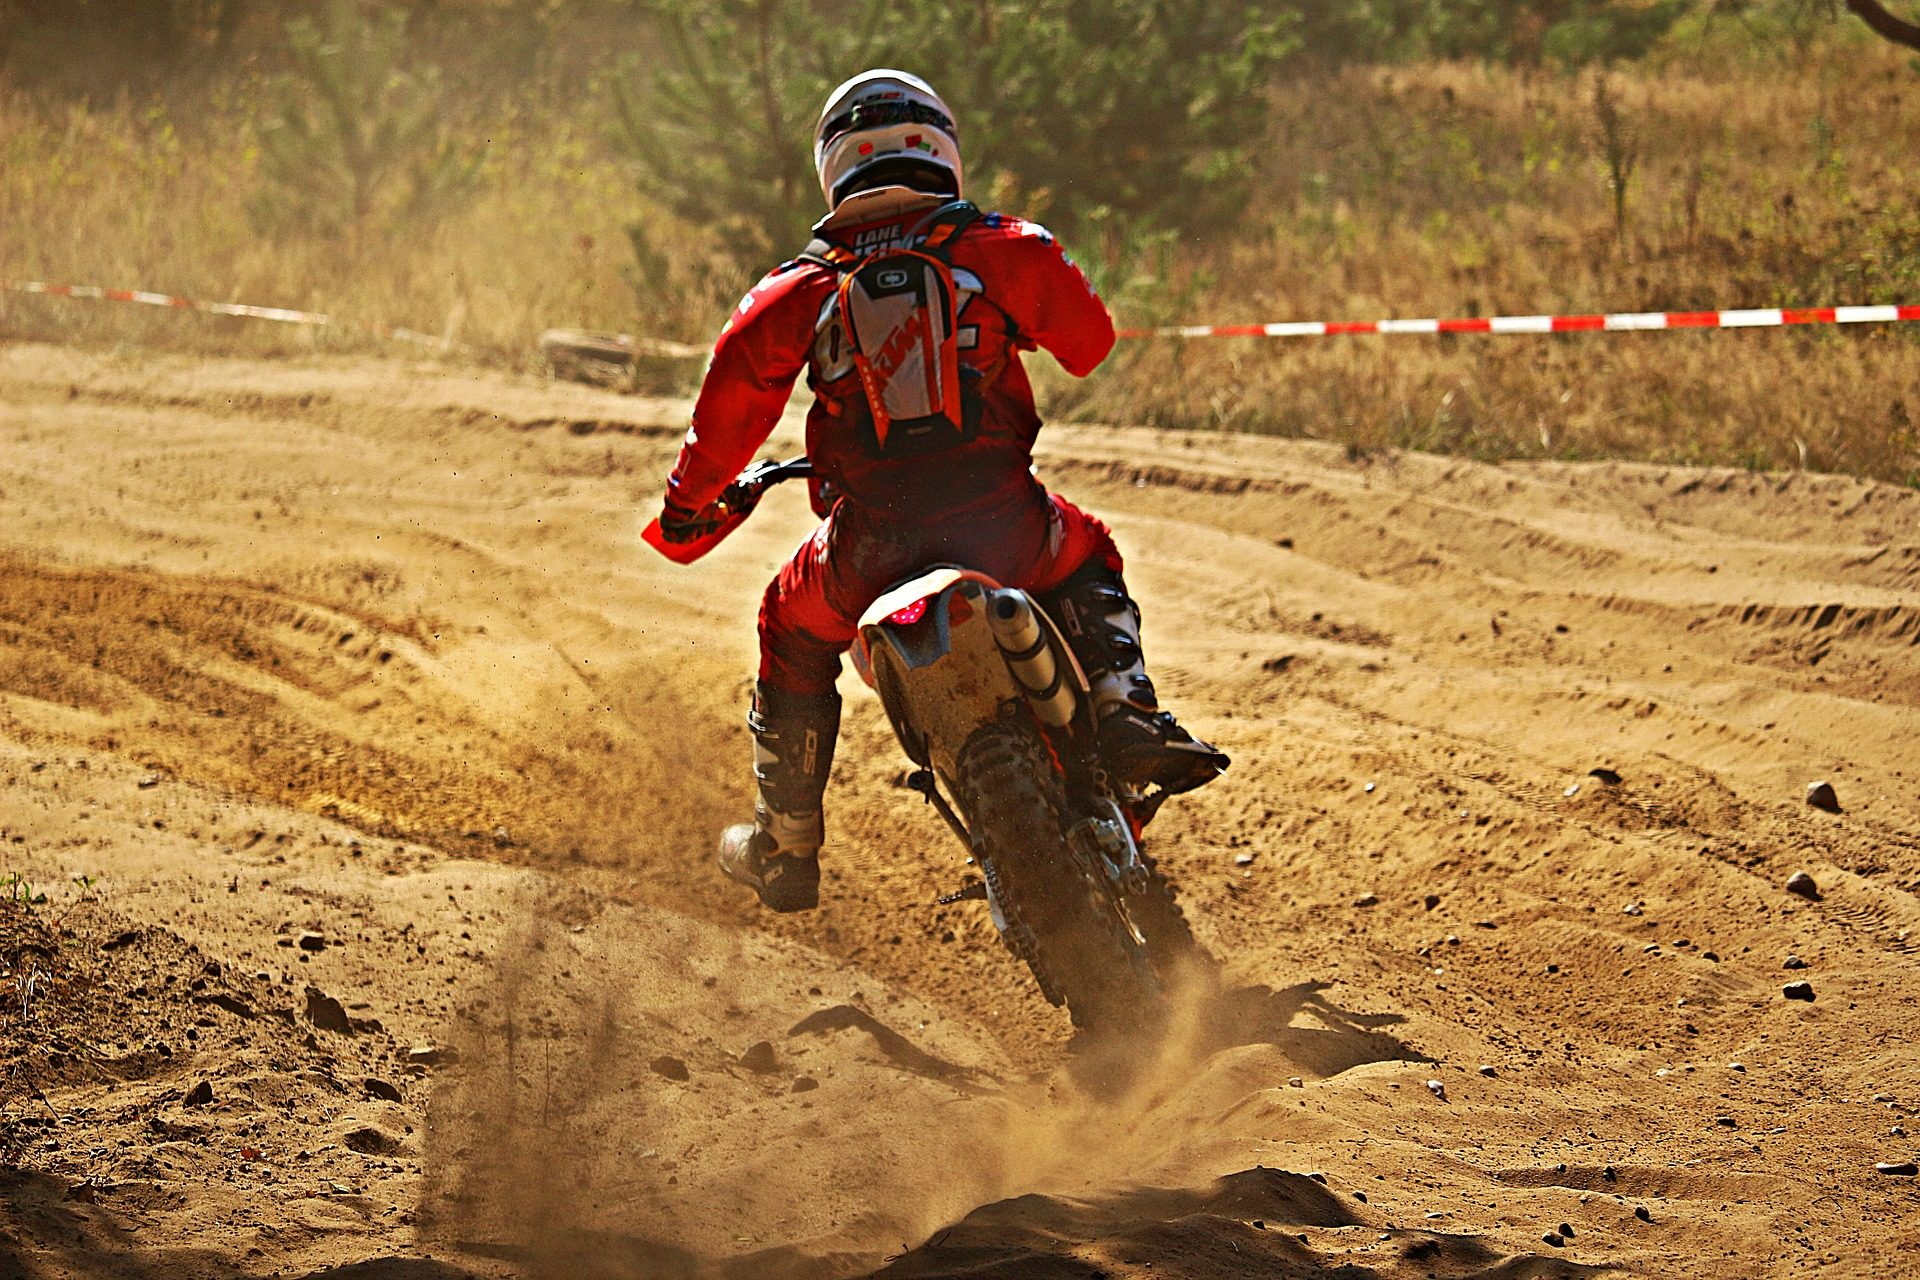 Motocross, Wettbewerb, Karriere, Sand, Drift, Risiko - Wallpaper HD - Prof.-falken.com